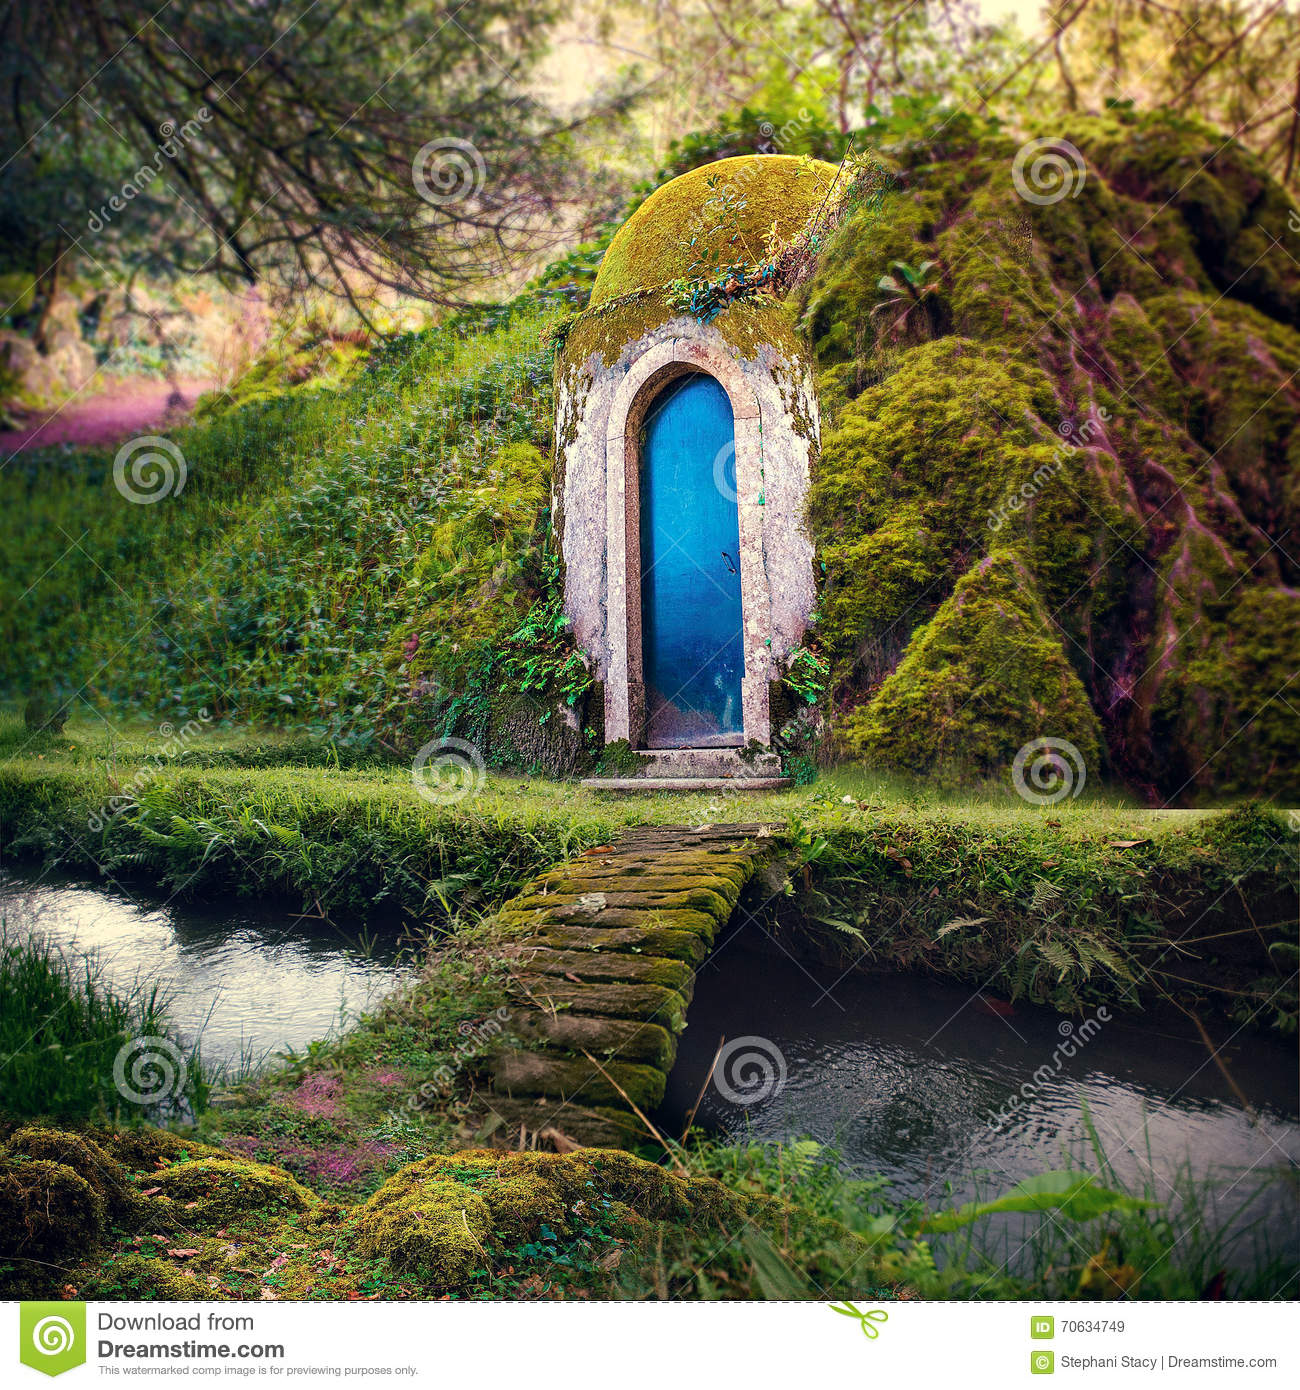 Romantic Fairytale Home In A Magical Forest Fantasy